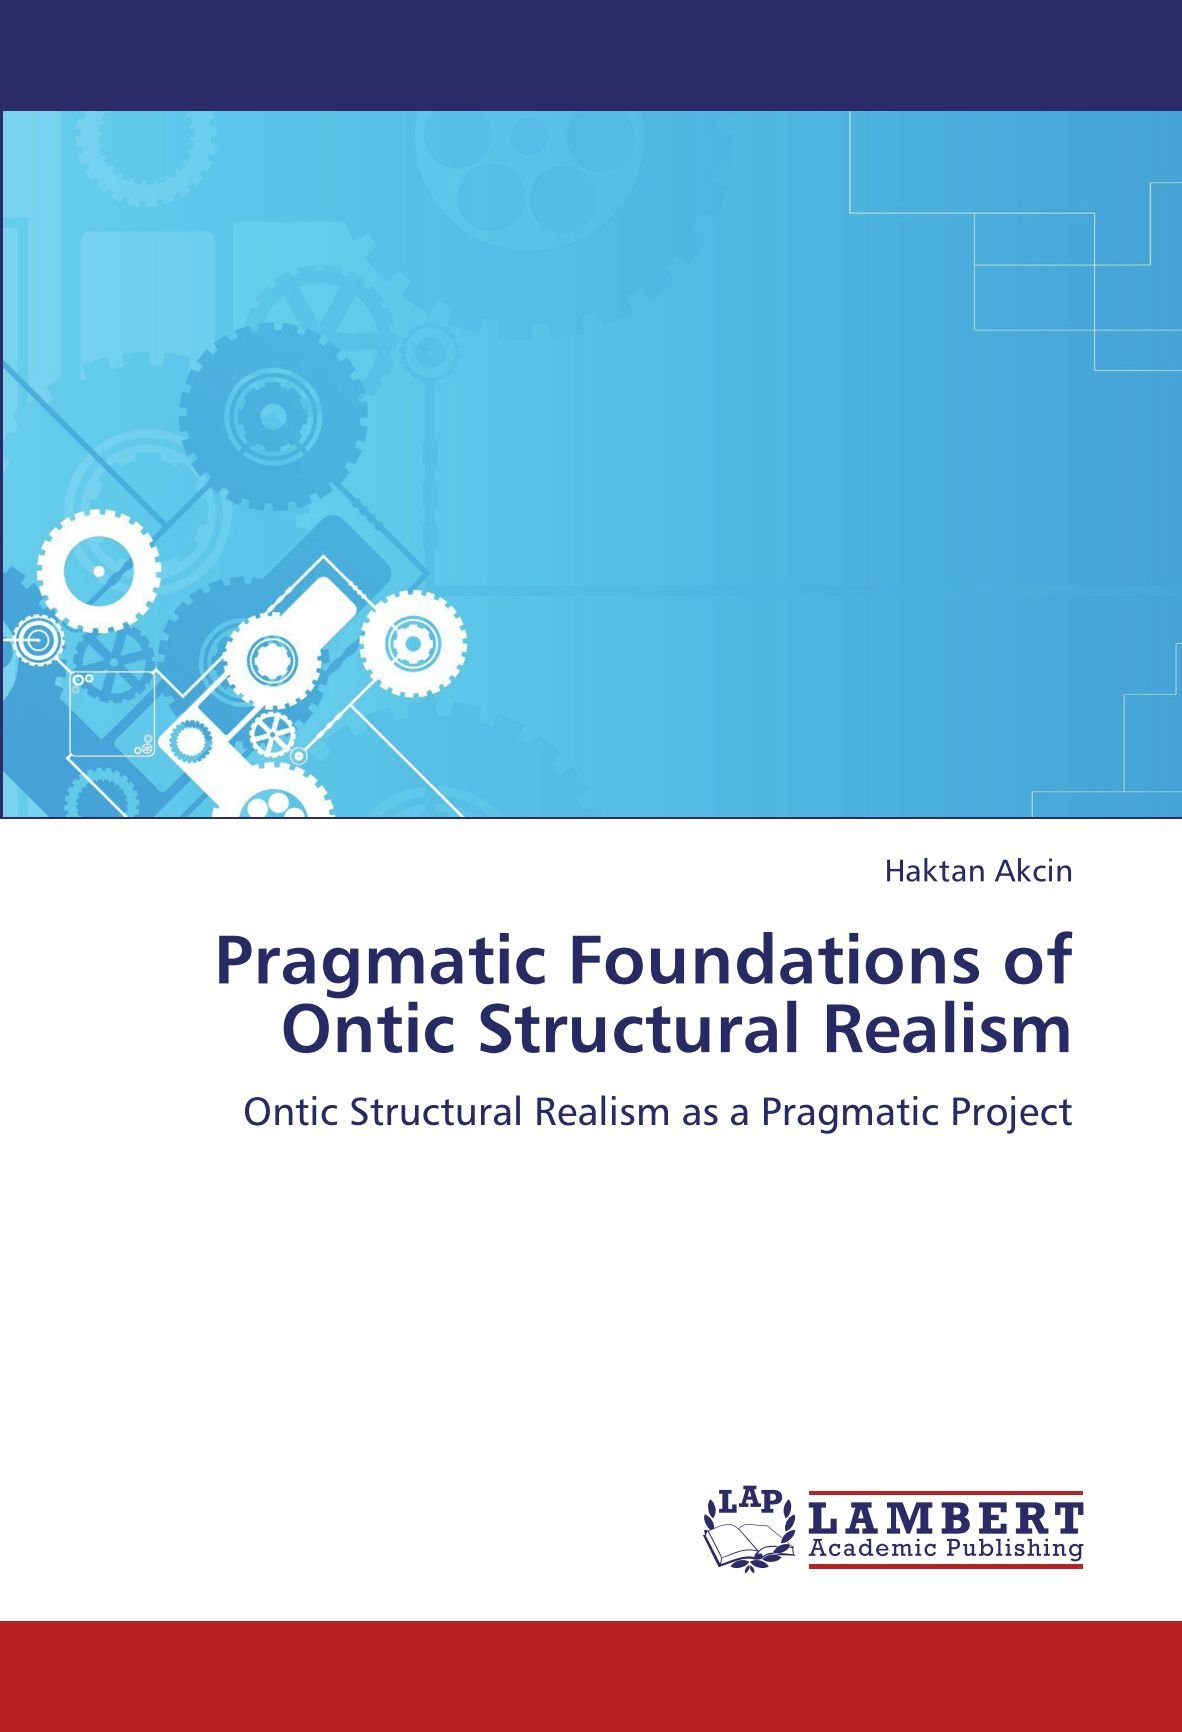 Pragmatic Foundations of Ontic Structural Realism: Ontic Structural Realism as a Pragmatic Project PDF